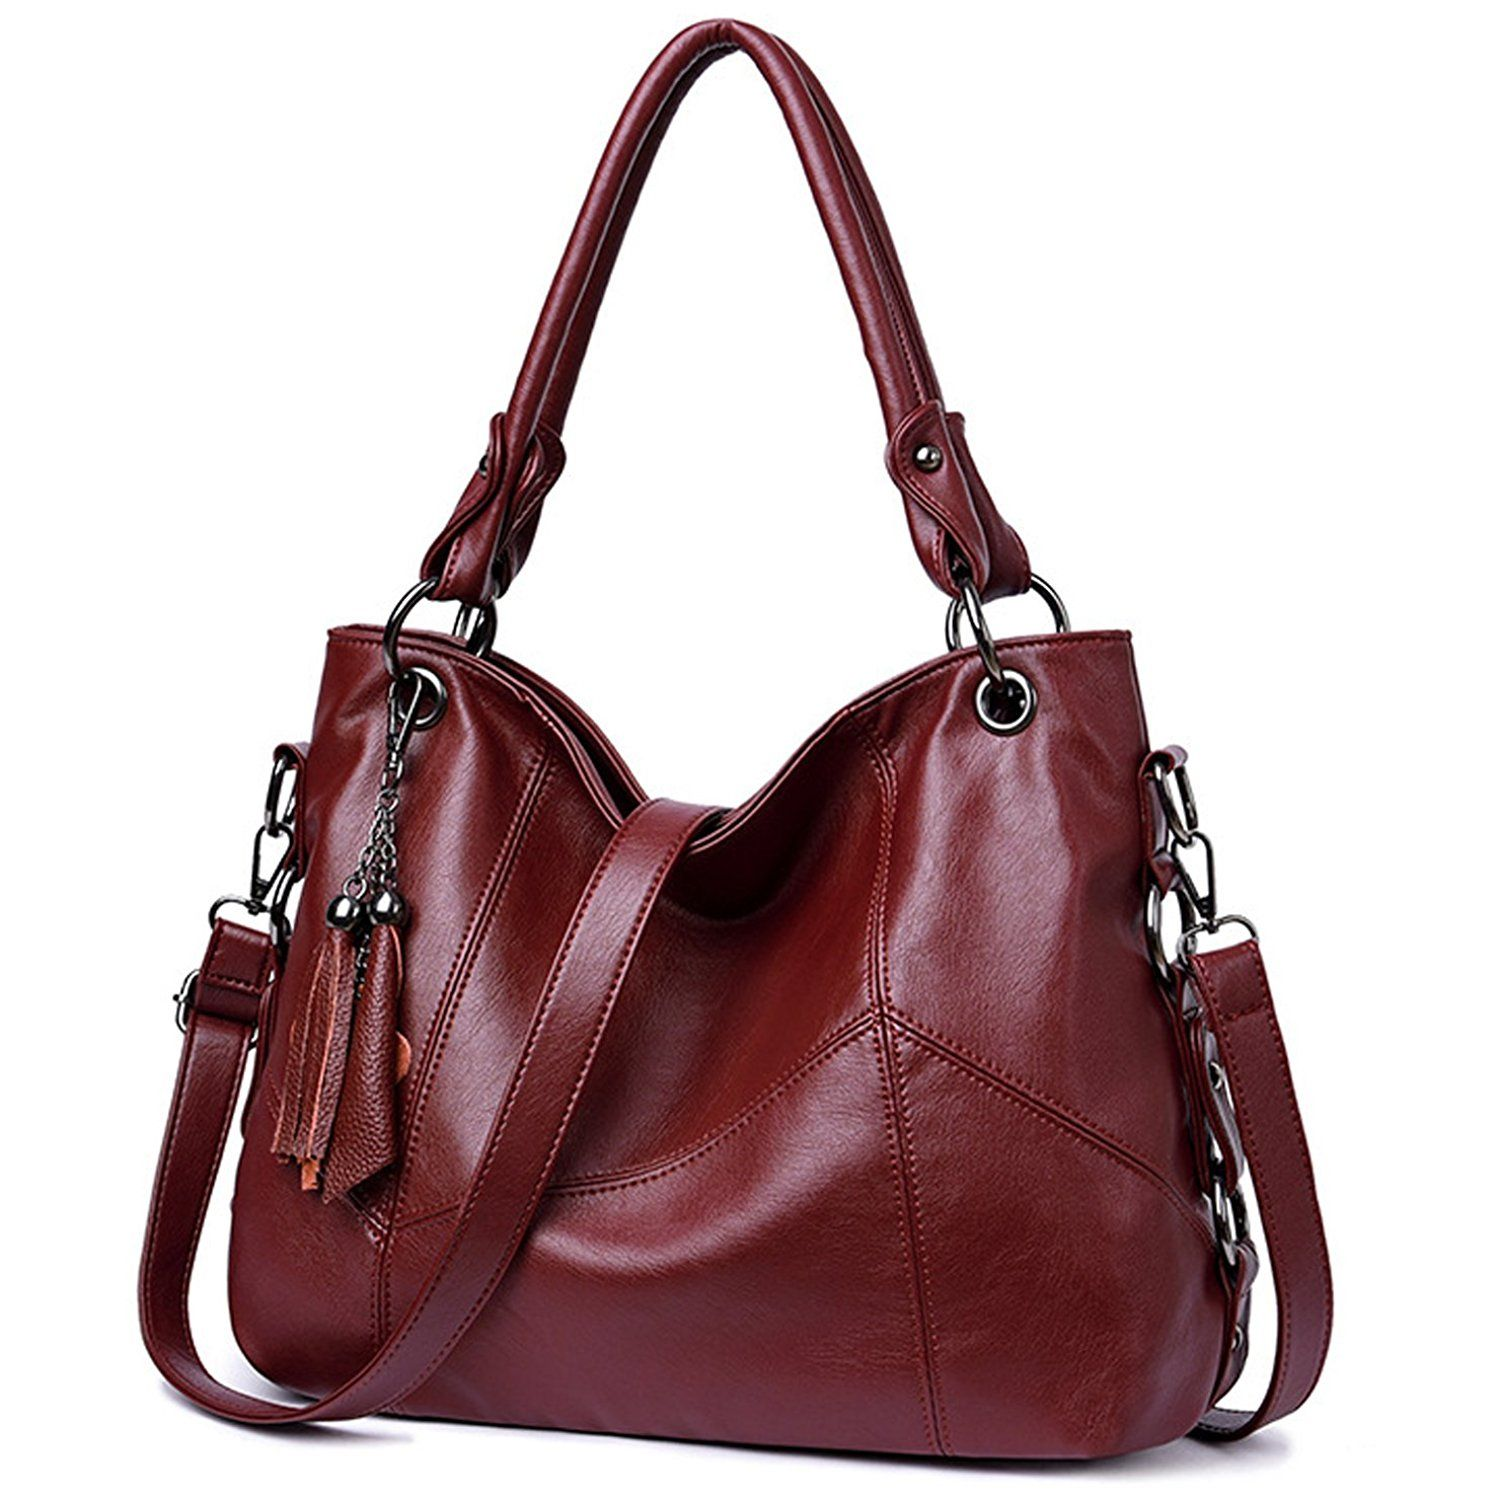 Lustear Soft Leather Handbag Hobo Style Purse Tote Shoulder Bag With Tassel For Women